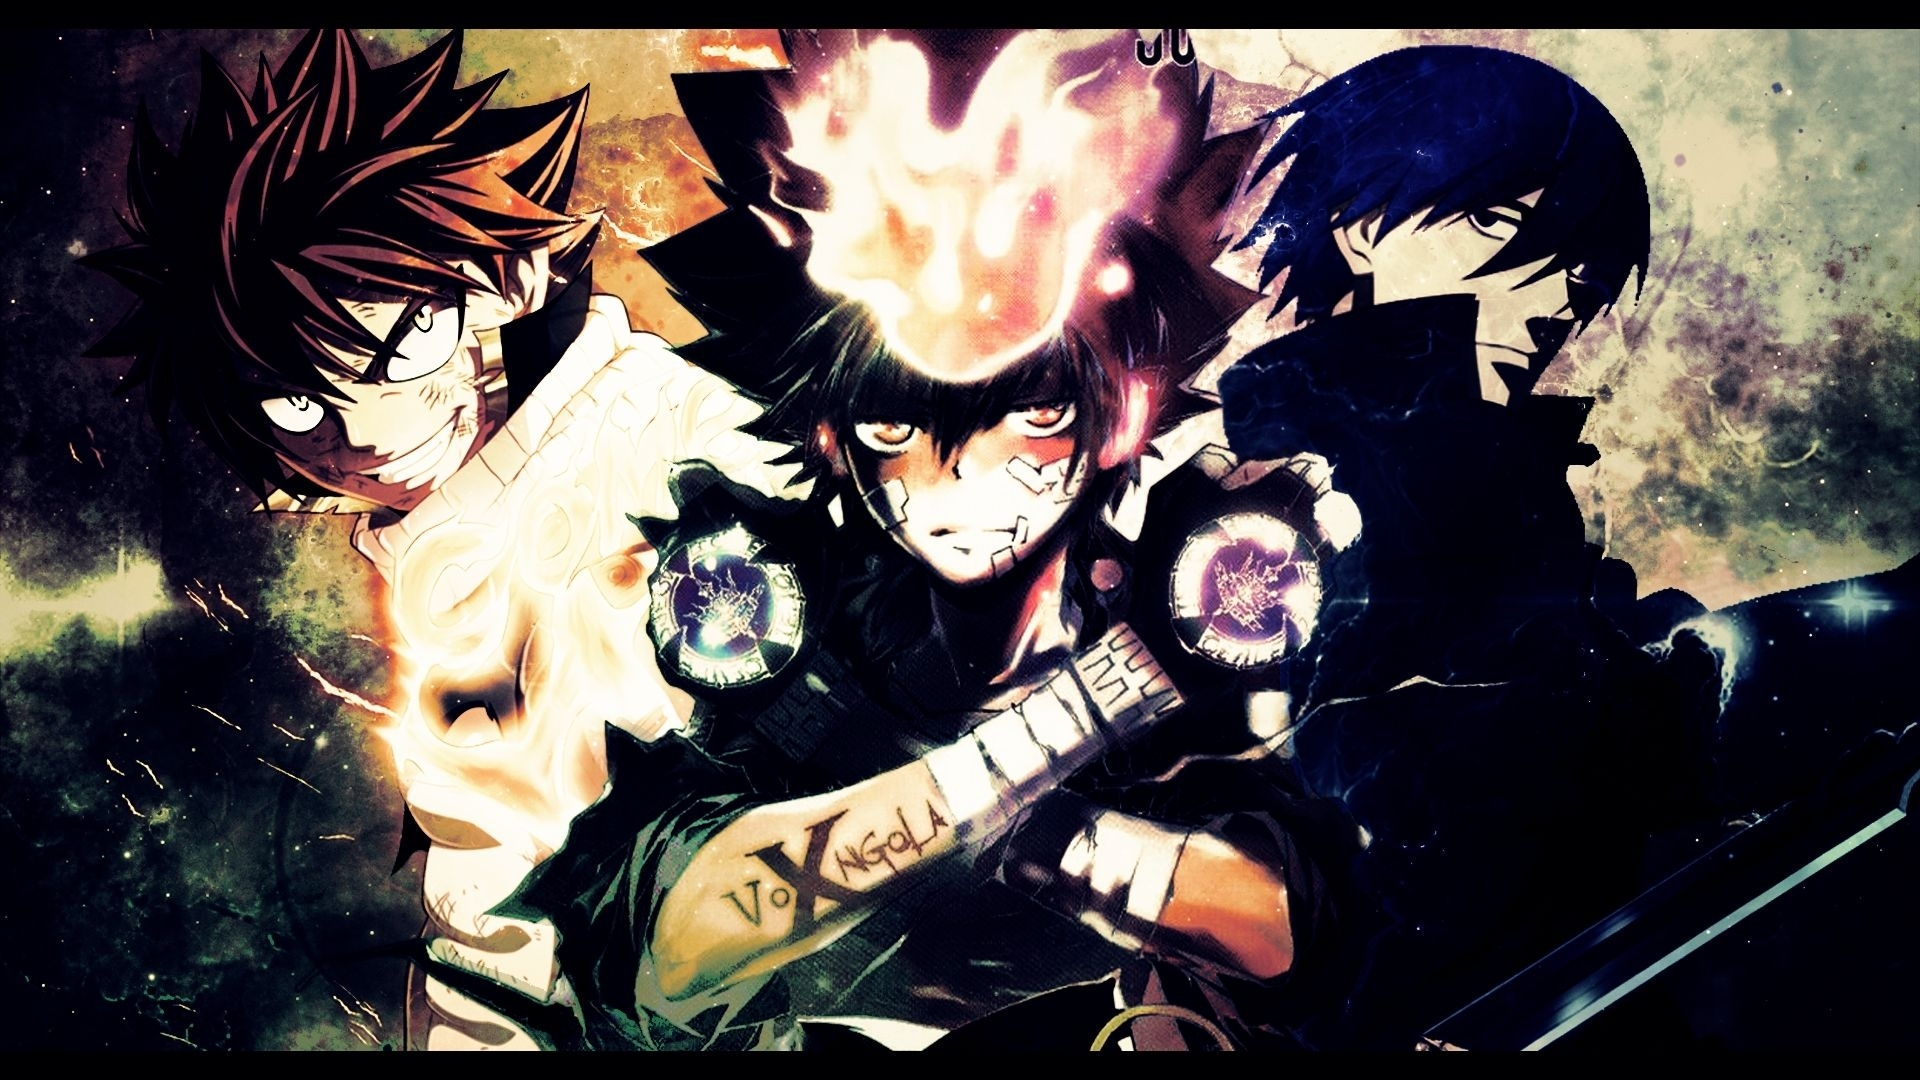 hd anime wallpapers find best latest hd anime wallpapers for your pc